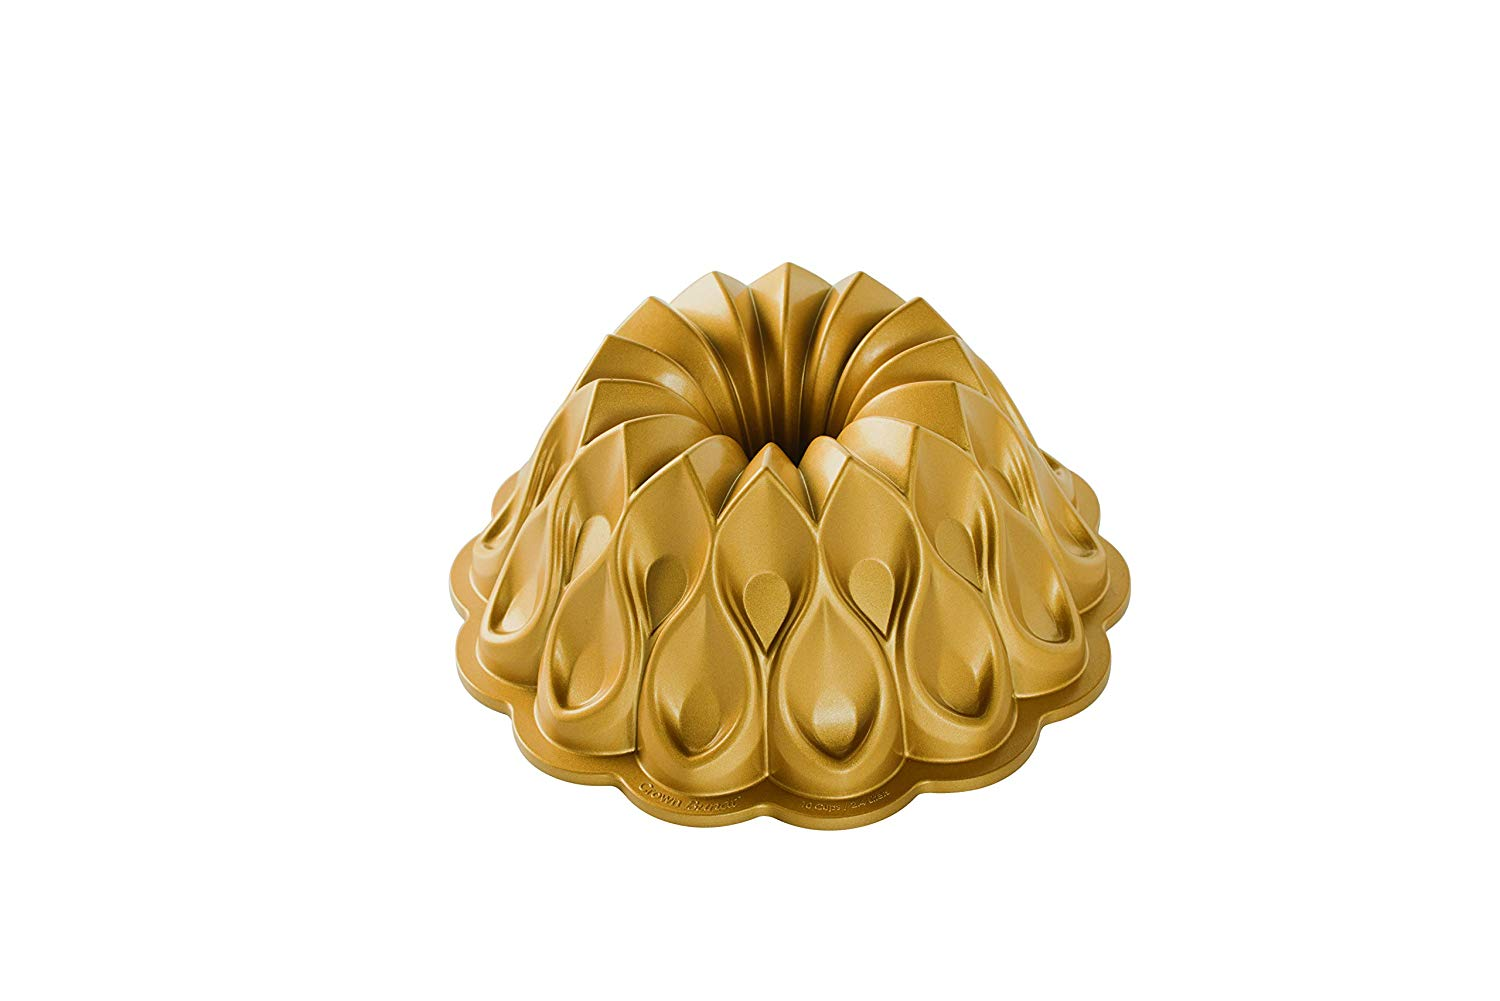 91777 Crown Bundt Pan, One Size, Gold, Our fantastic 70th anniversary pan! By Nordic Ware by